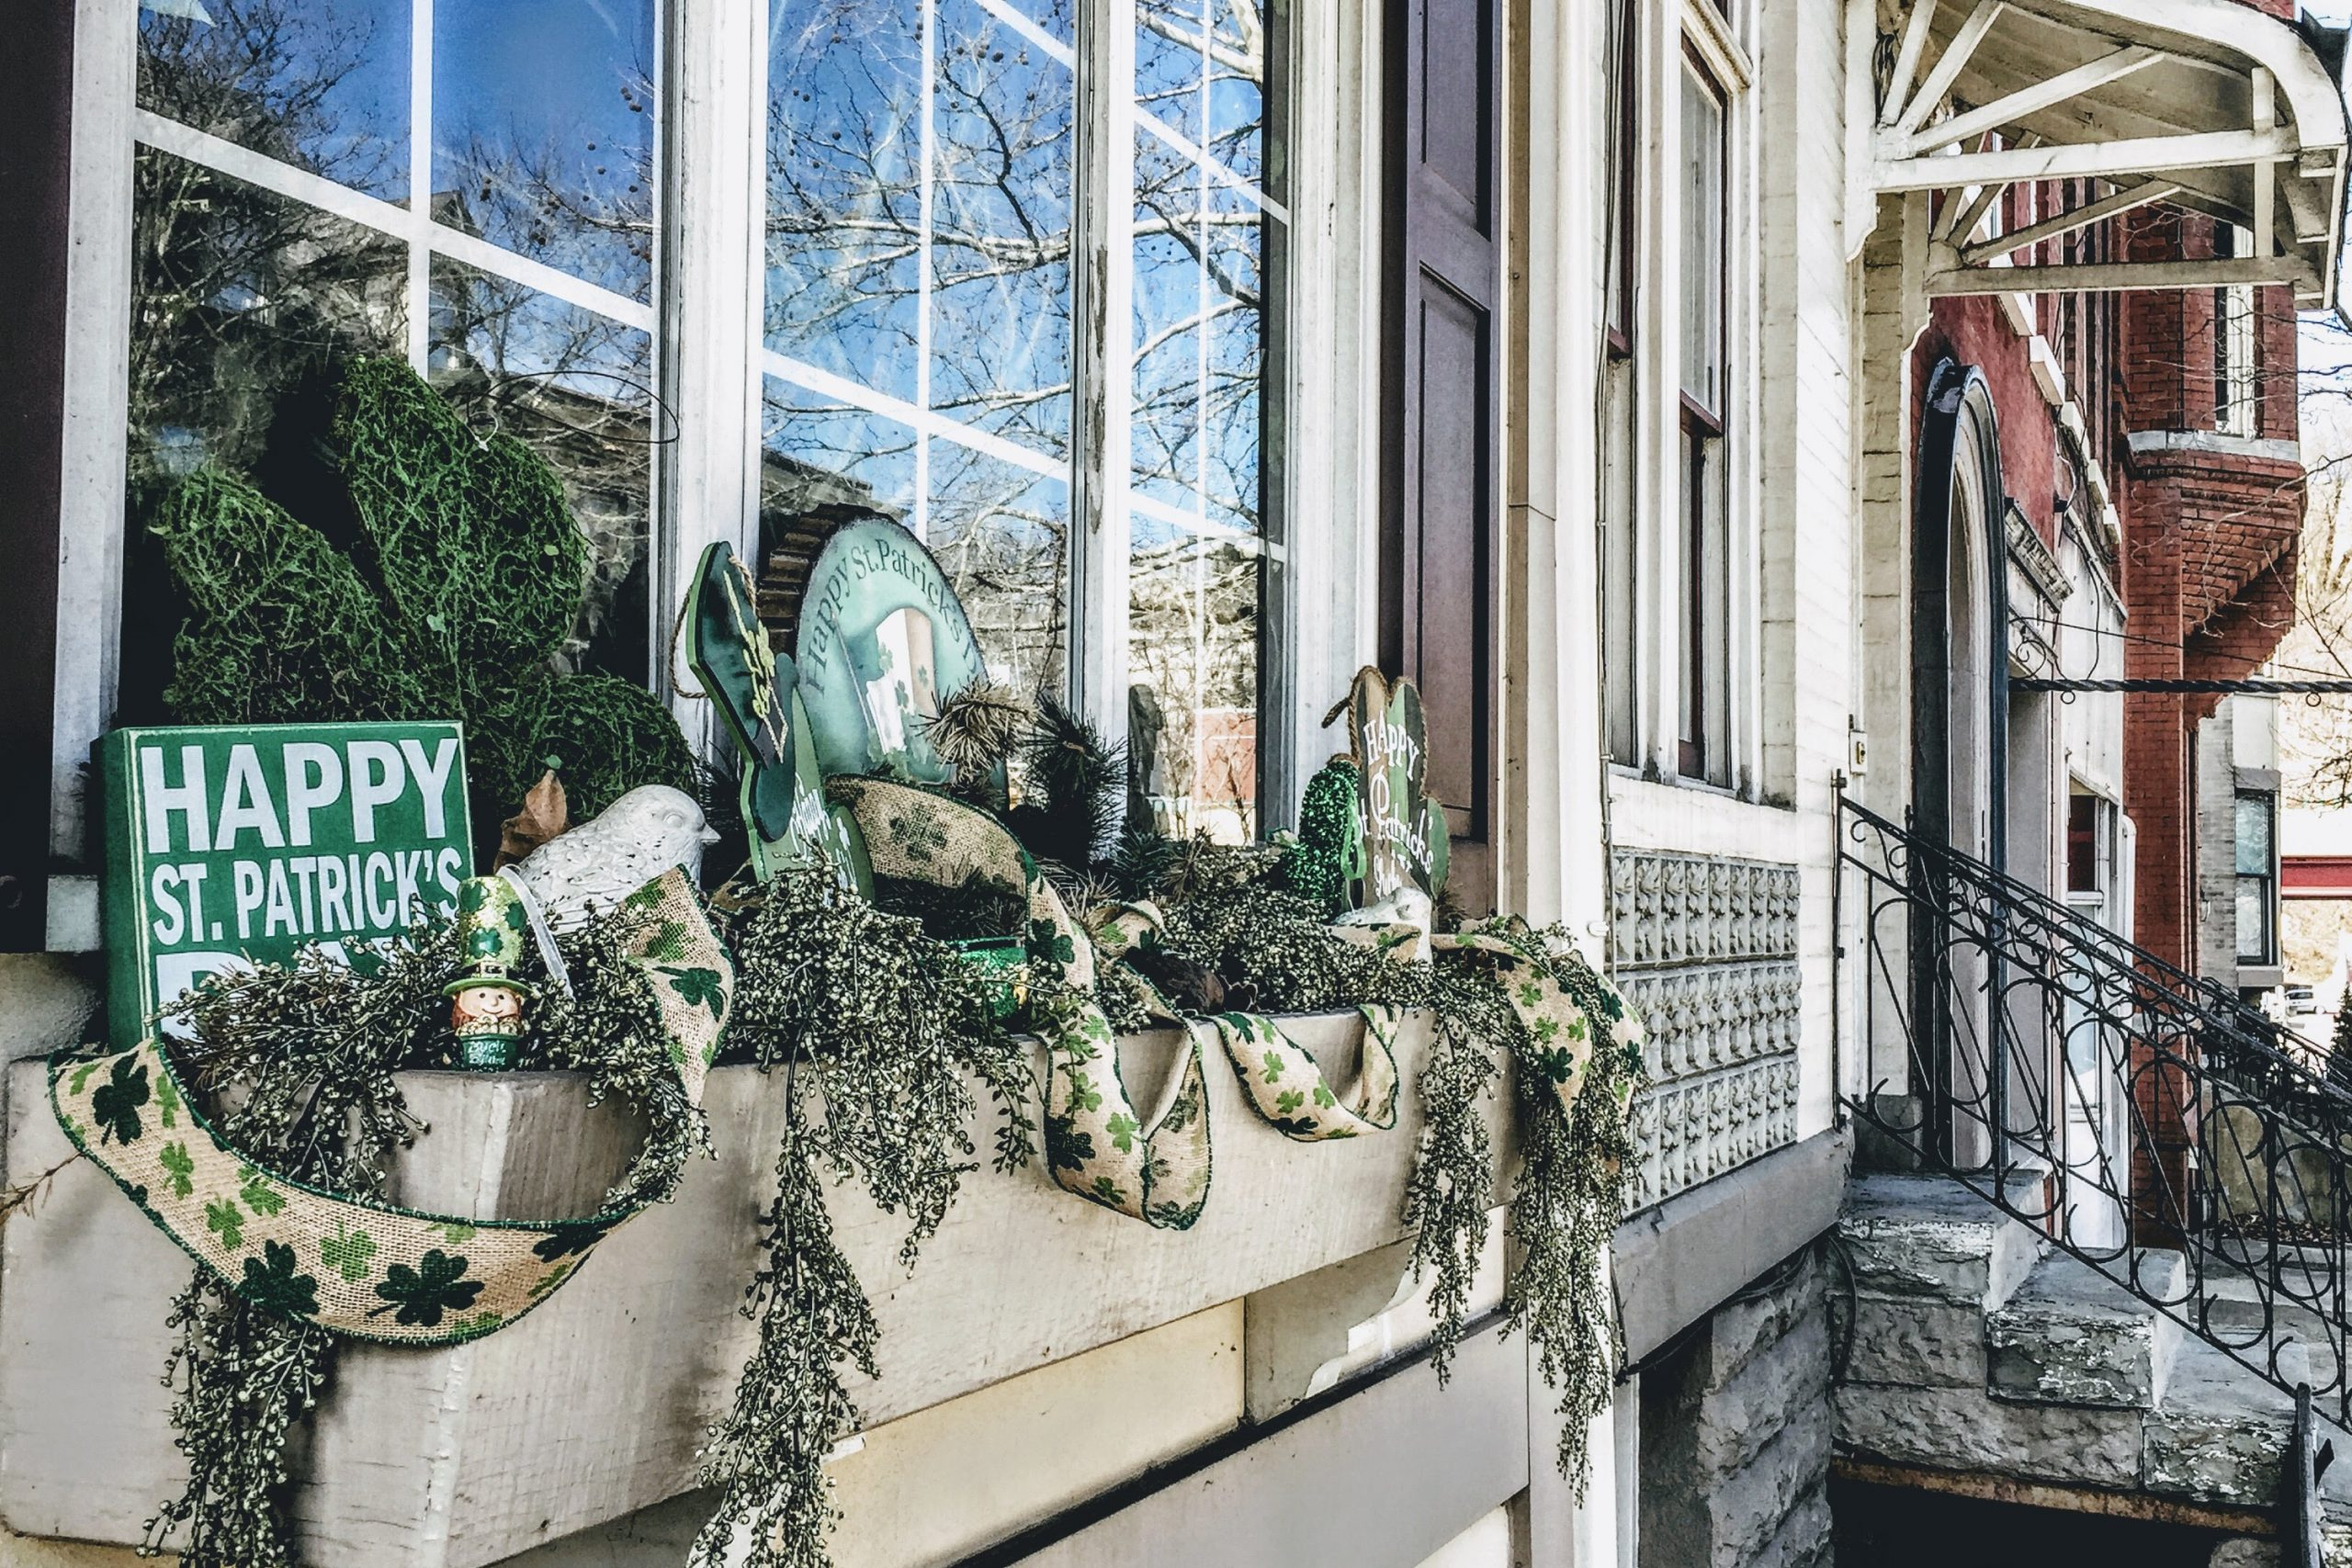 I like to have my porch completely decorated in the weeks leading up to St. Patrick's Day. I think it really helps everyone get in the festive mood. For the best St. Patrick's Day porch decor ideas, look here!